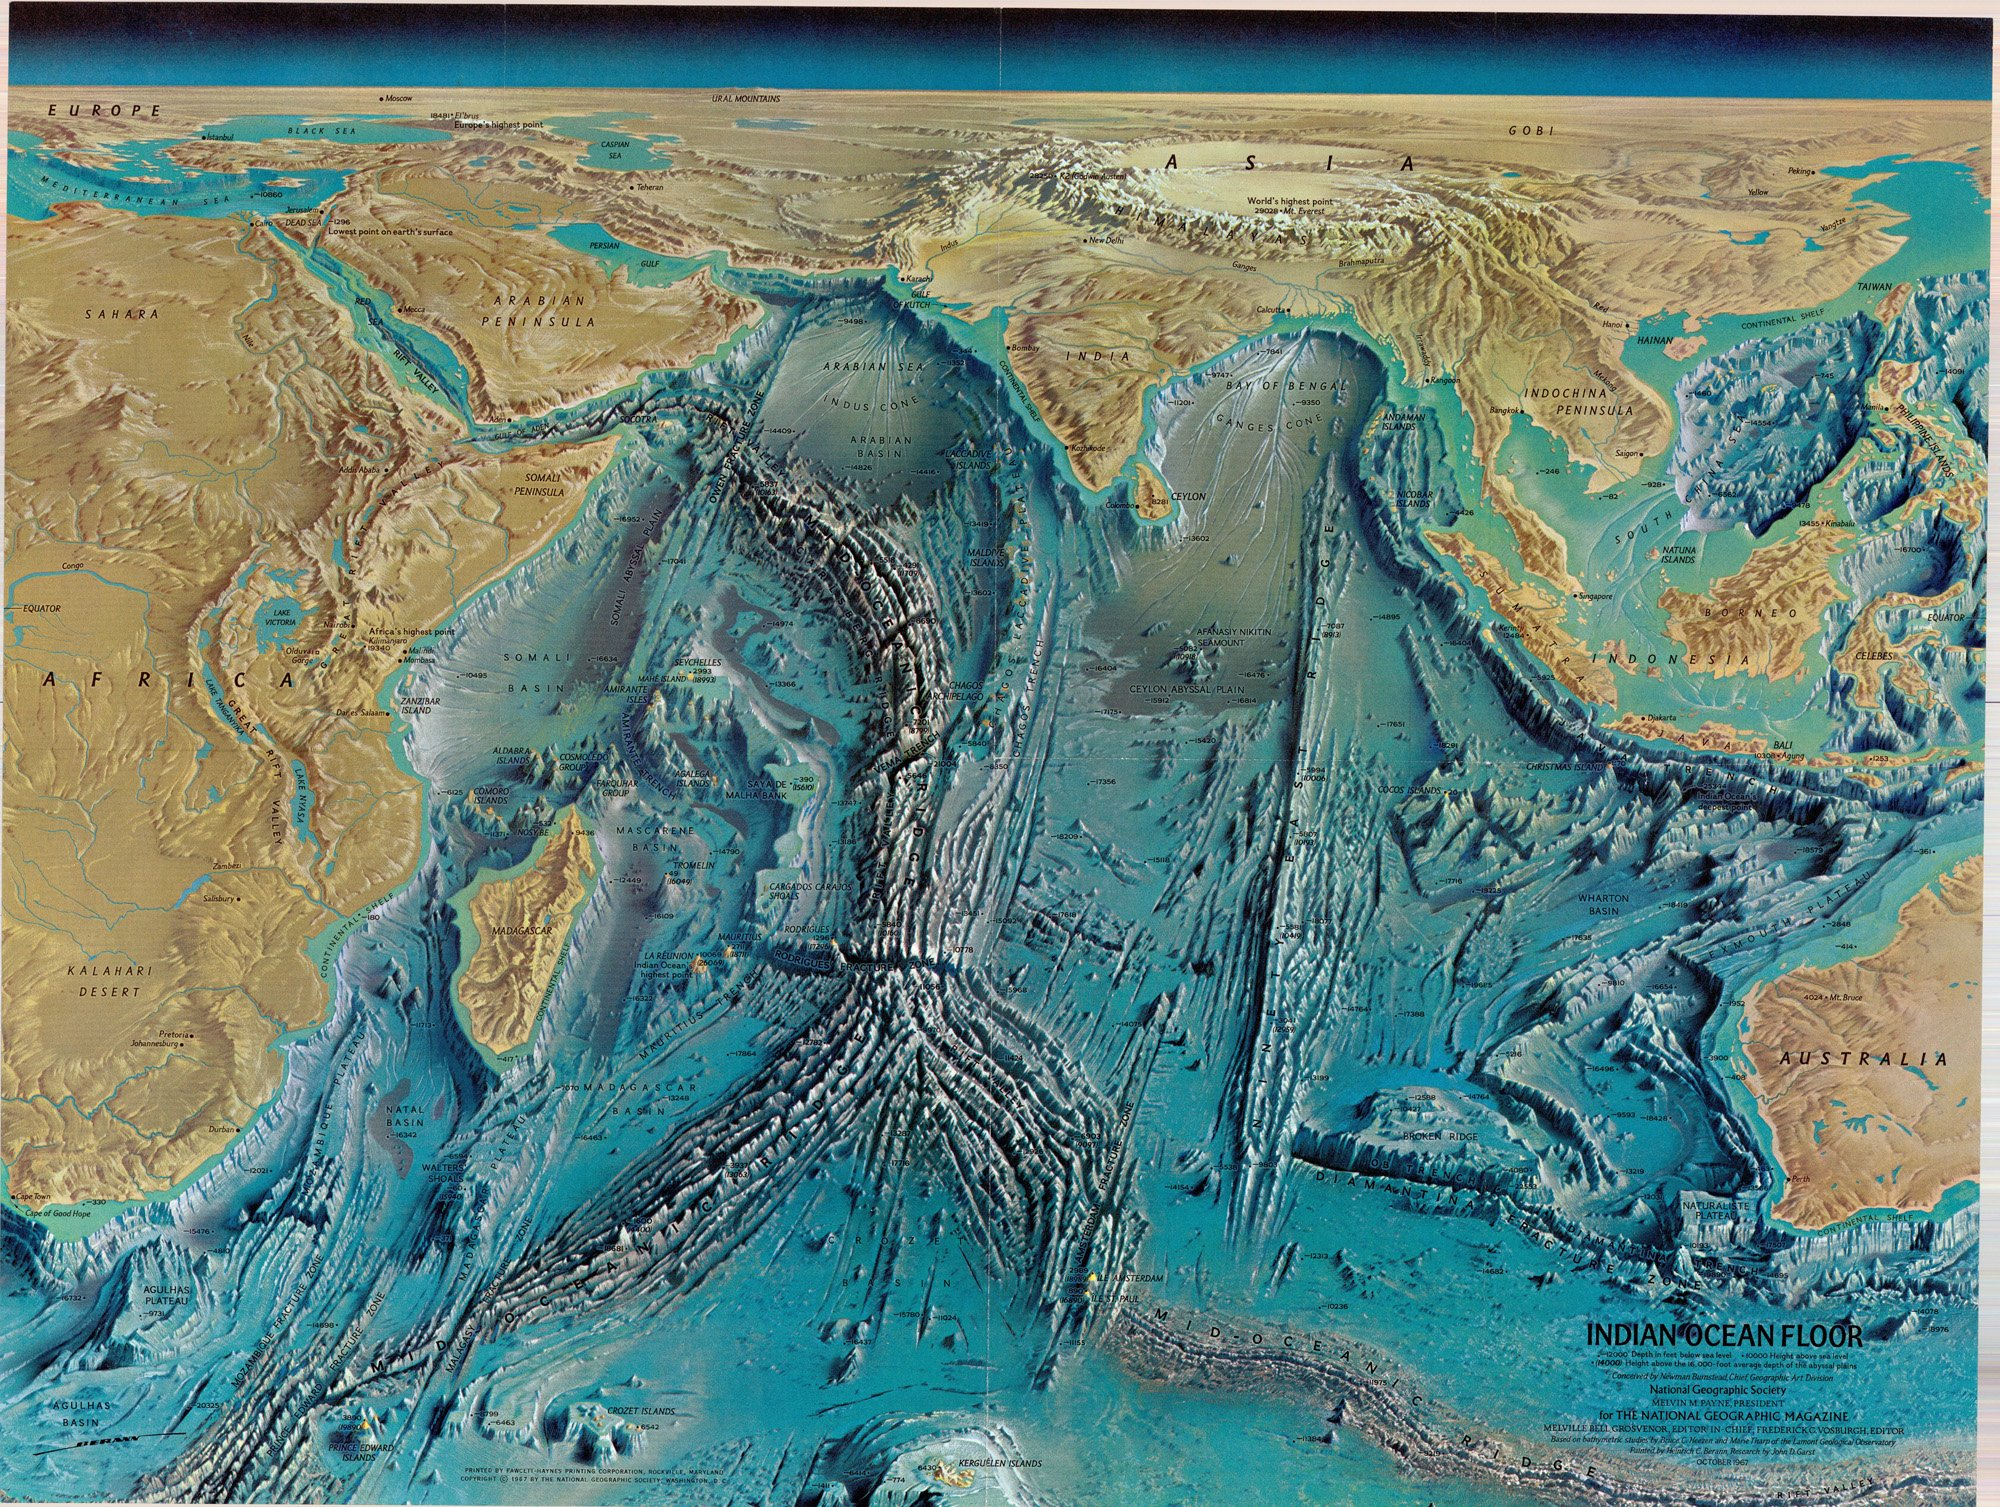 1967 Indian Ocean Map Marie Tharp The University Of Chicago